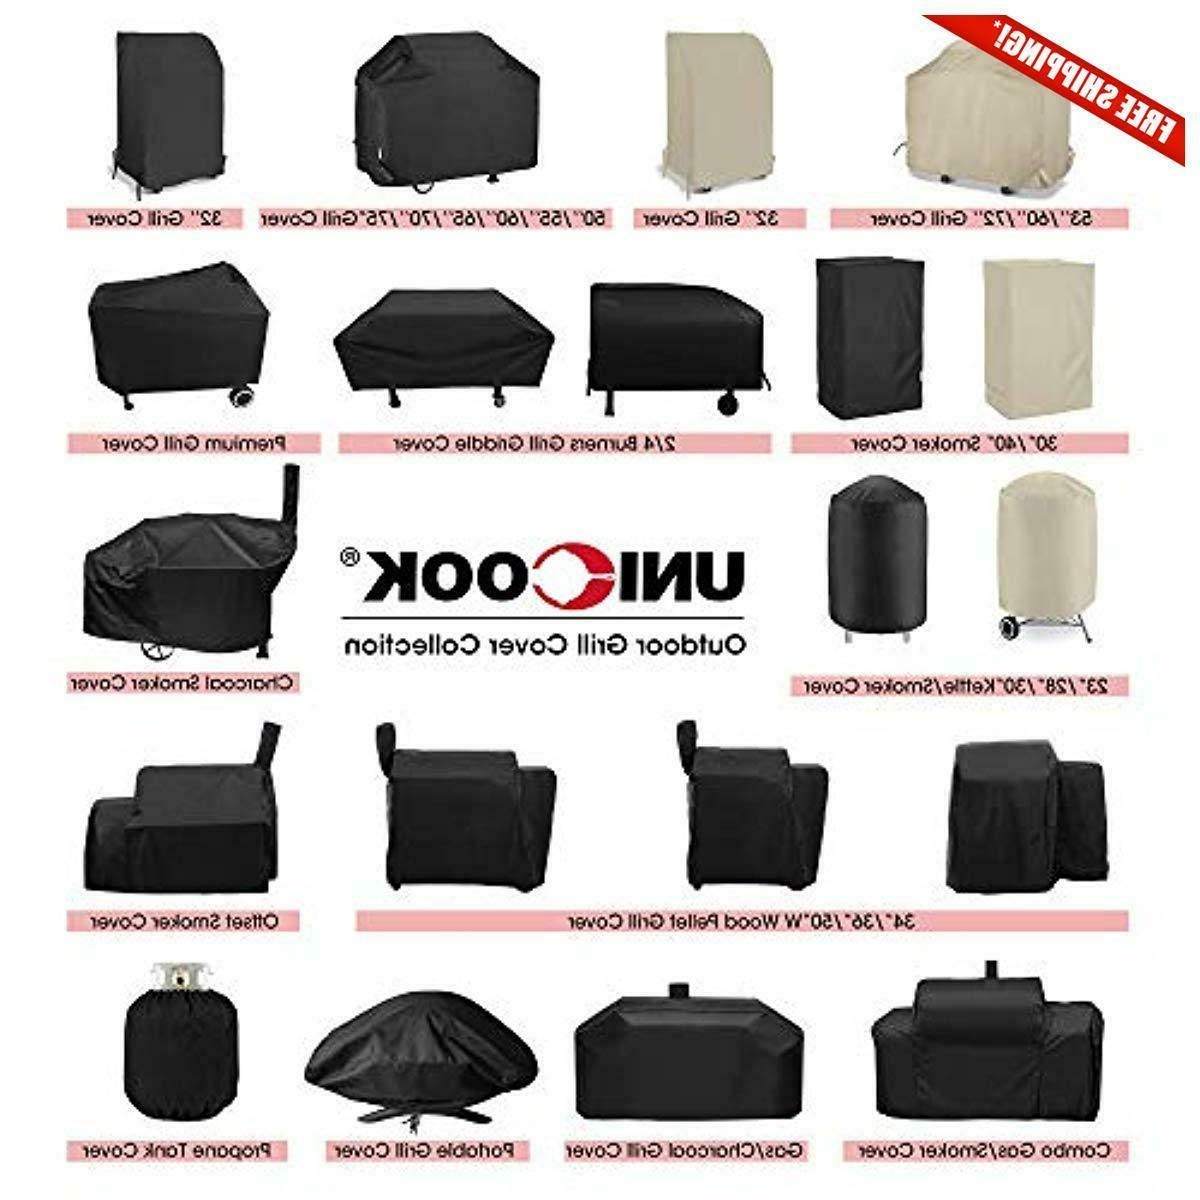 UNICOOK Charcoal and Smoker Cover,